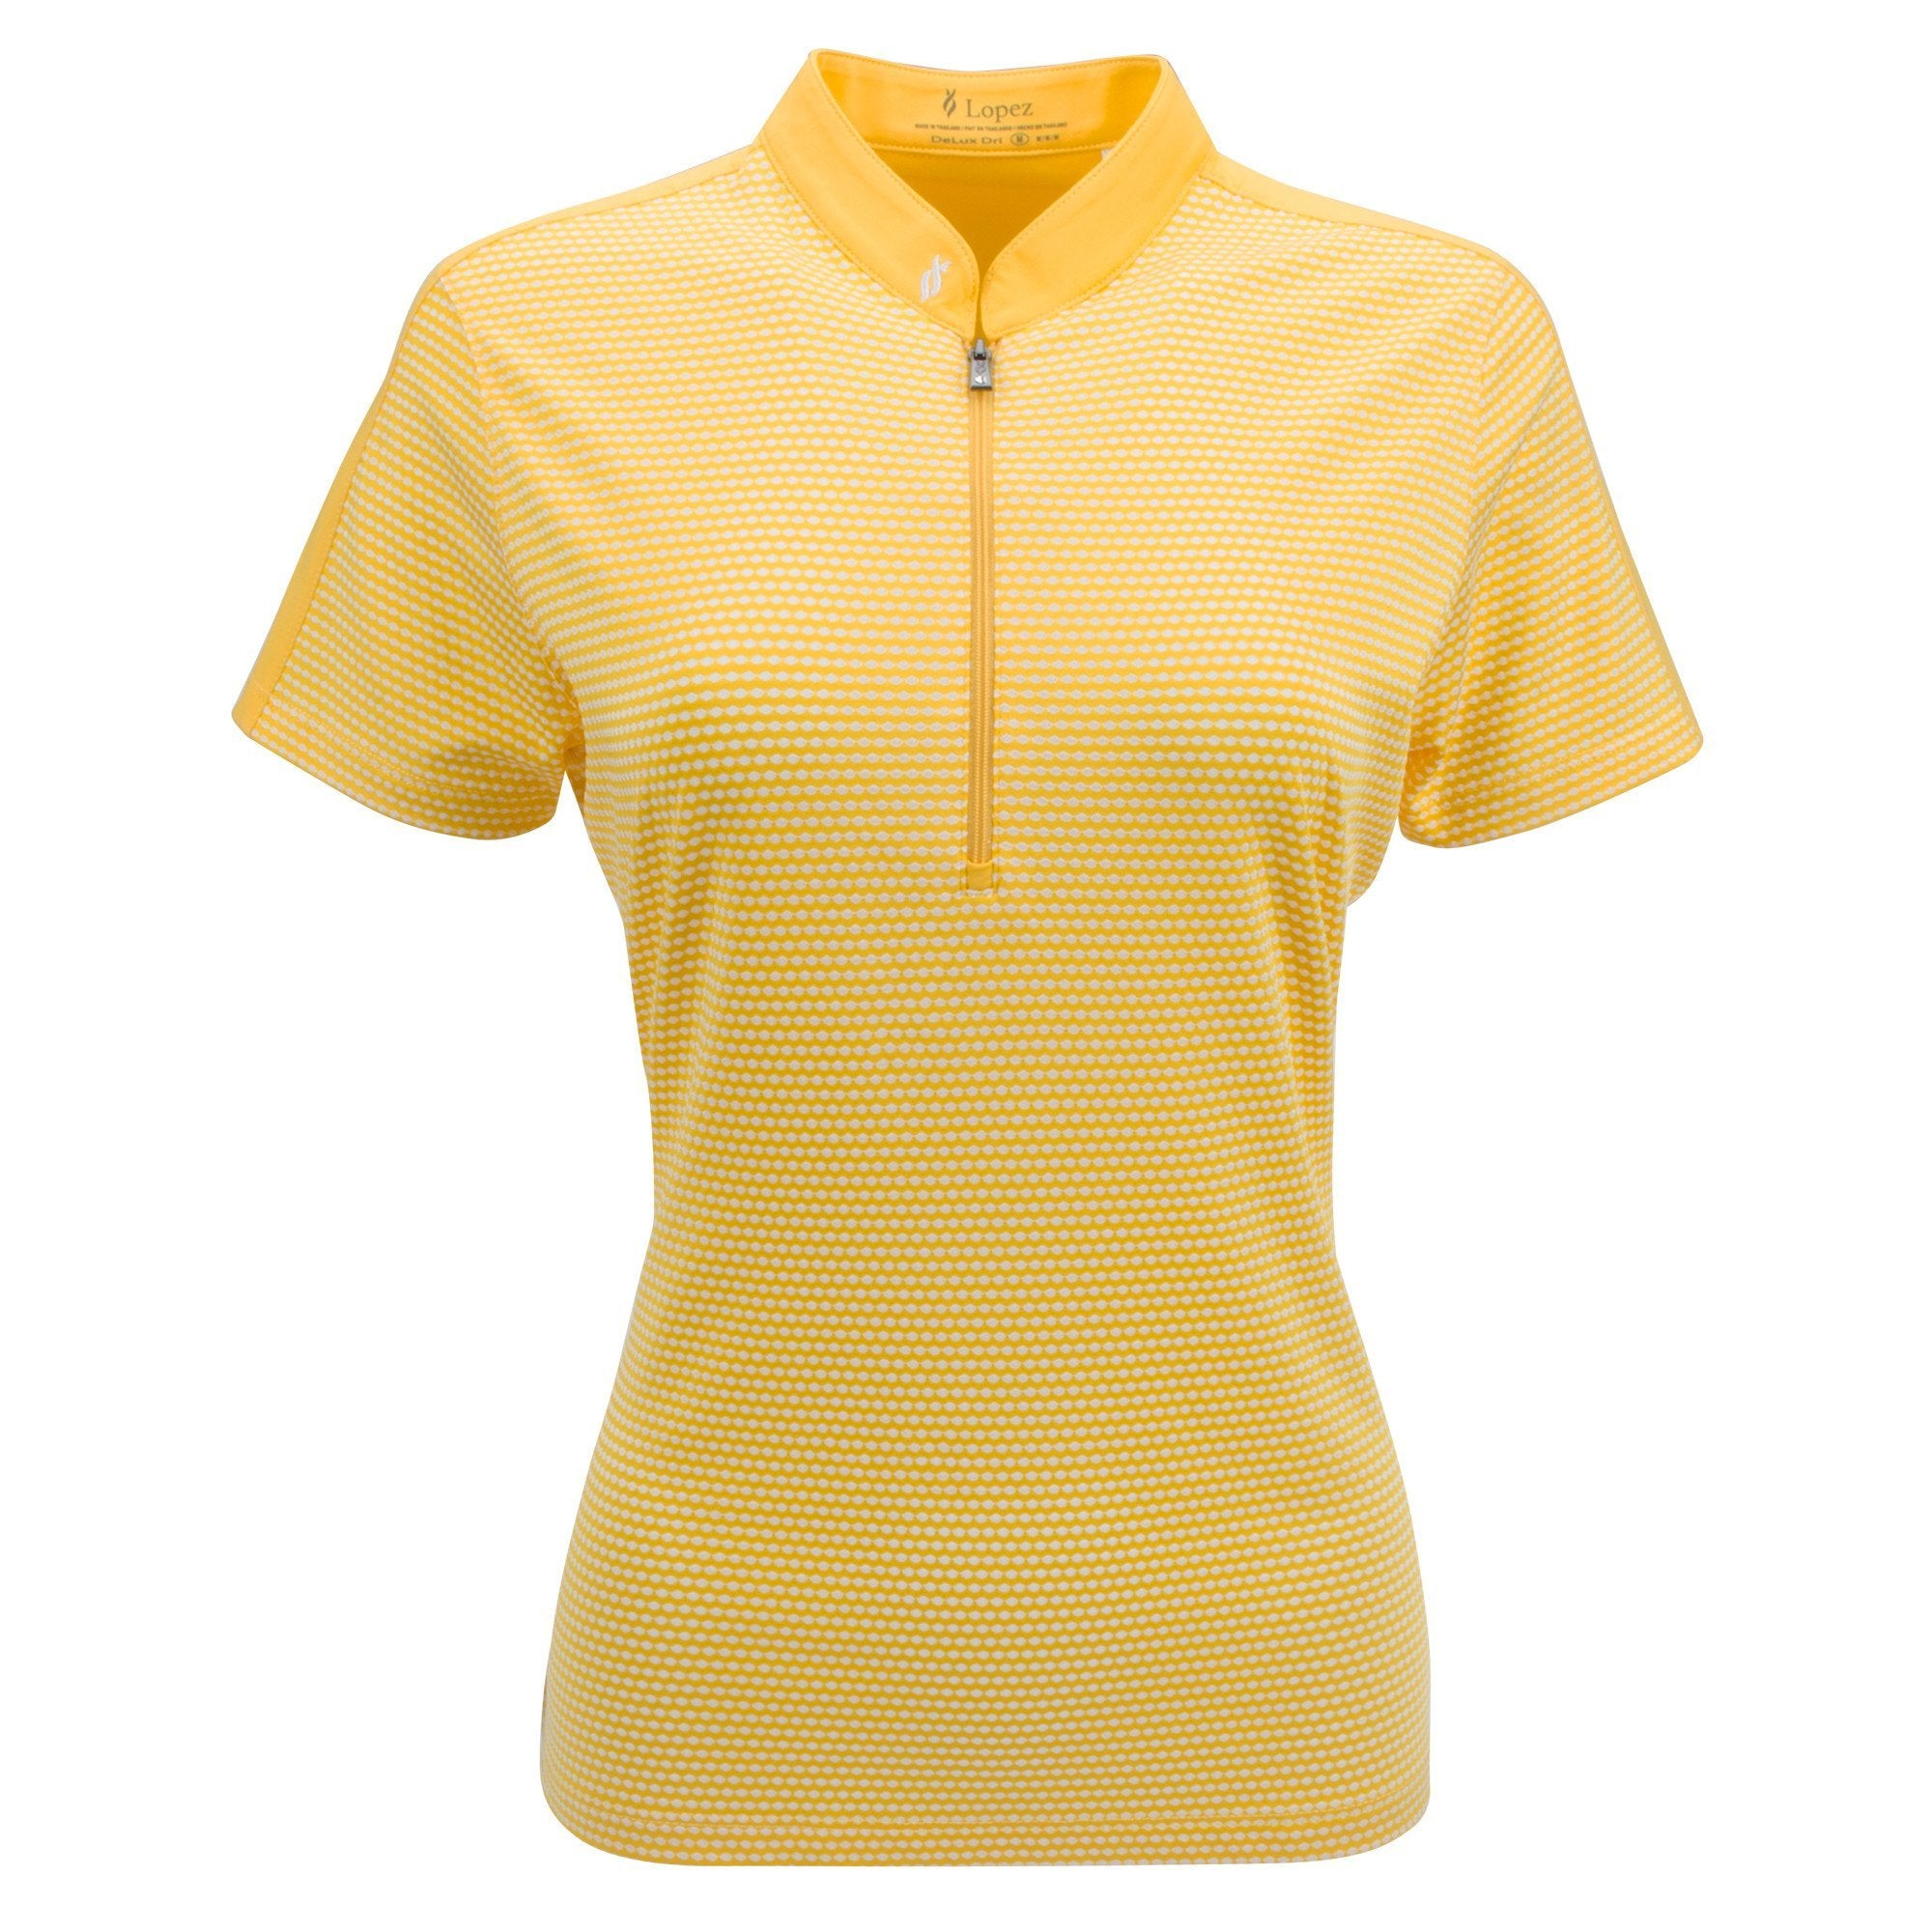 Nancy Lopez Golf Flex Short Sleeve Polo - Daffodil